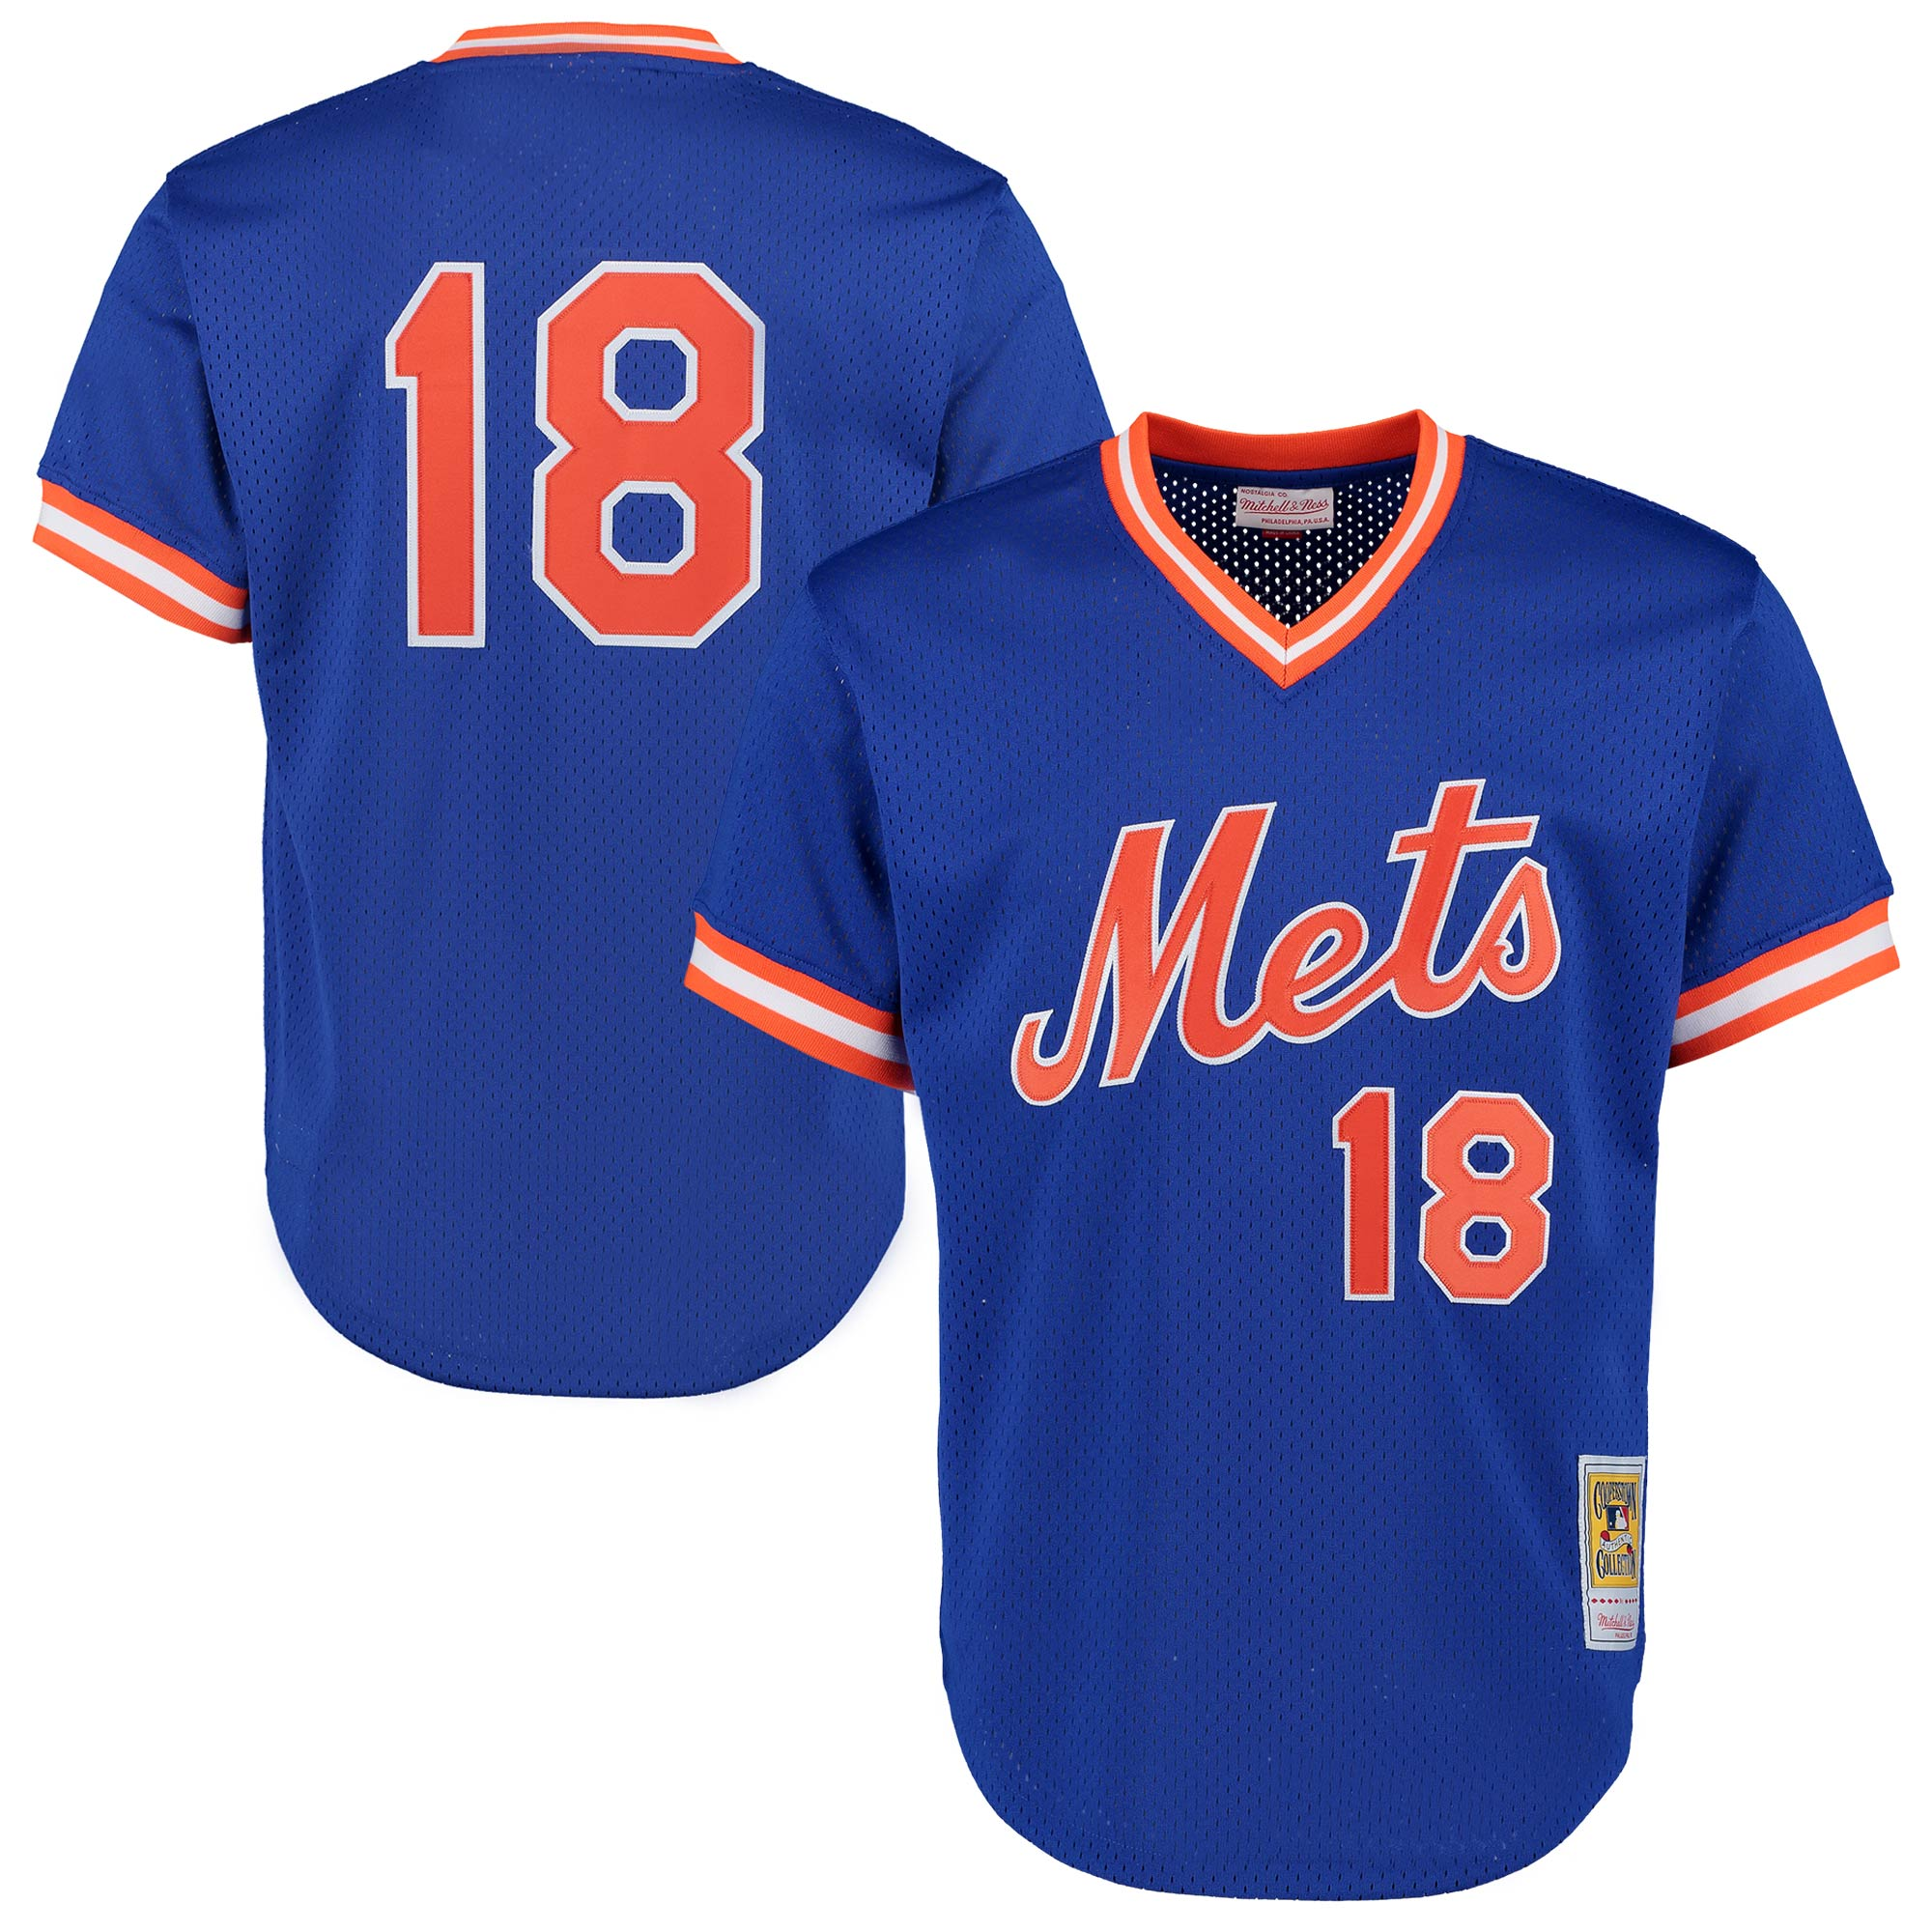 Darryl Strawberry New York Mets Mitchell & Ness Cooperstown Mesh Batting Practice Jersey - Royal